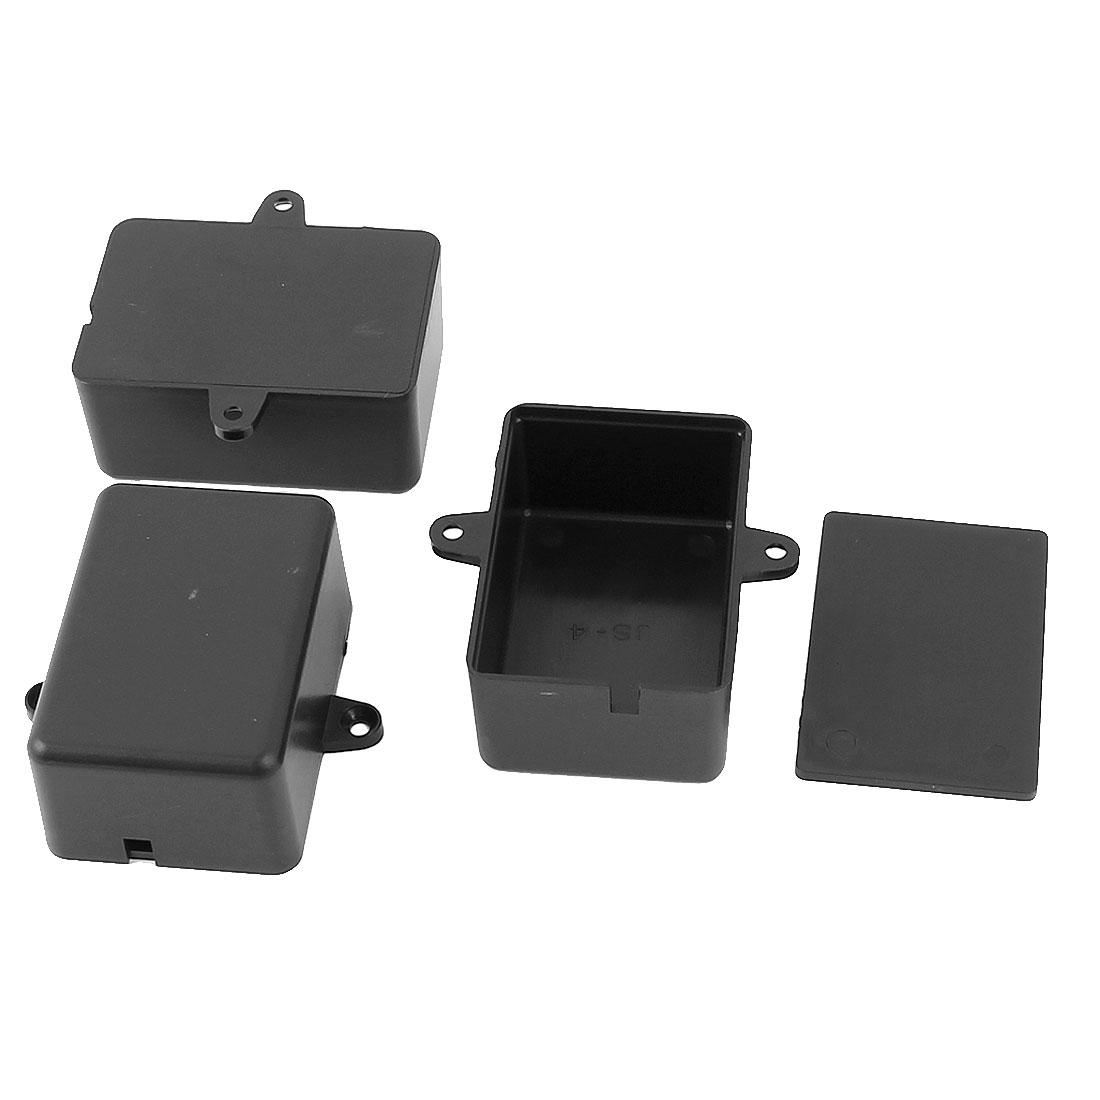 Dustproof IP65 Sealed Electric Switch Cable Junction Box 55x35x23mm Black 3pcs